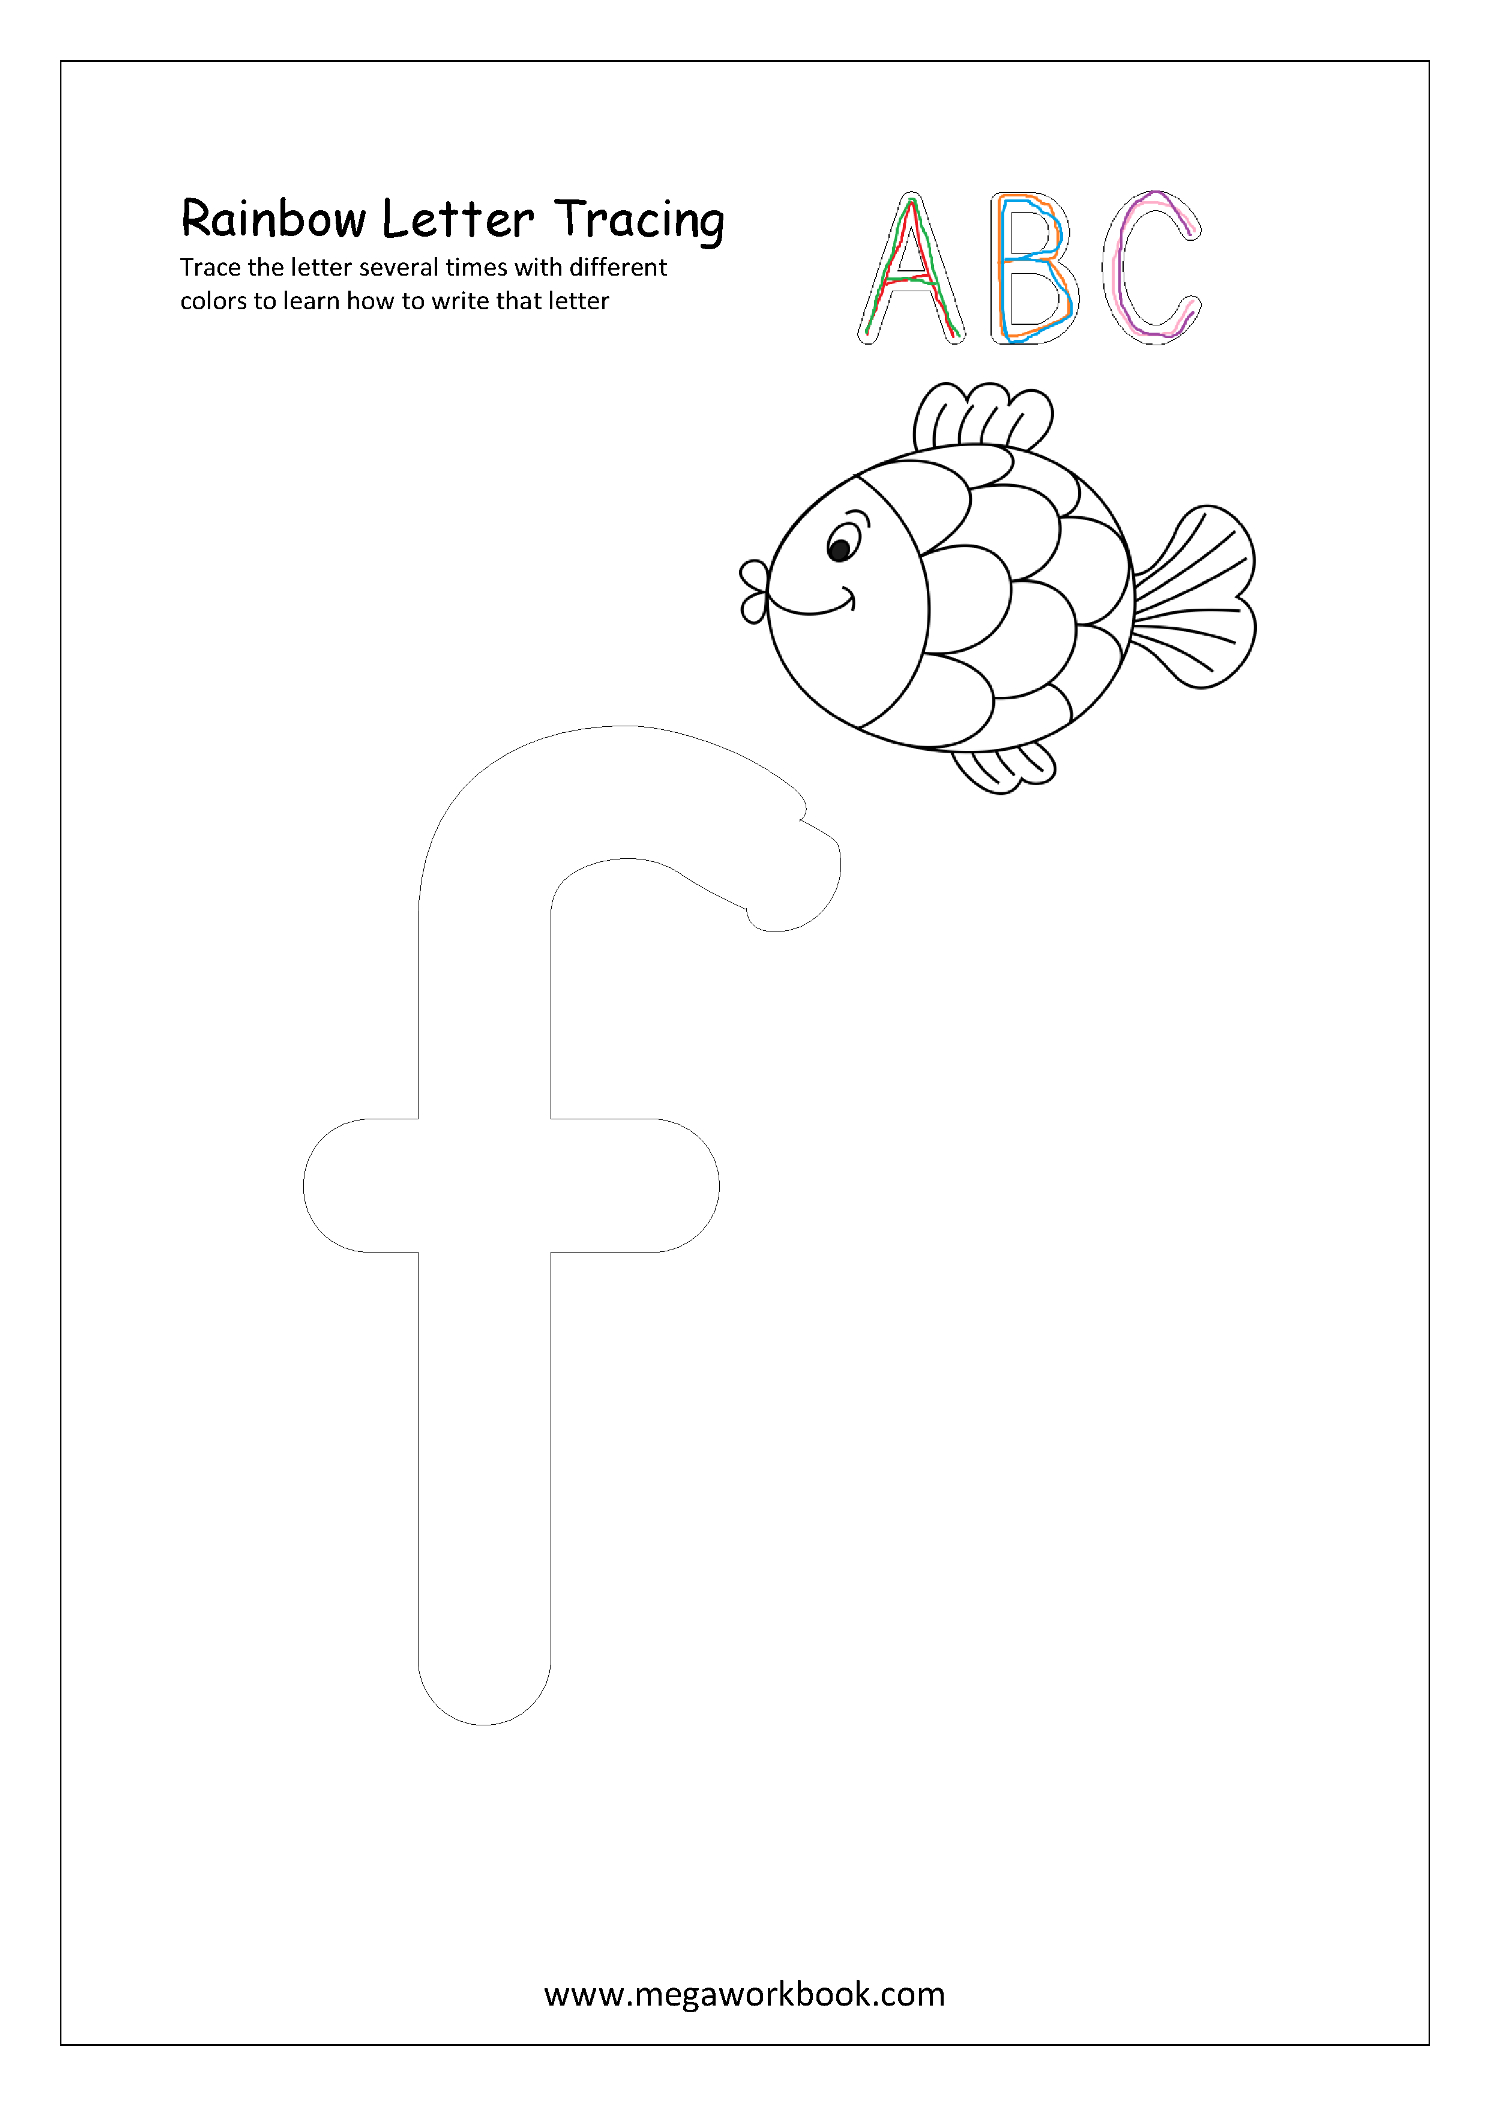 Rainbow Letter Tracing - Small Letters - F (Alphabet intended for Rainbow Tracing Letters